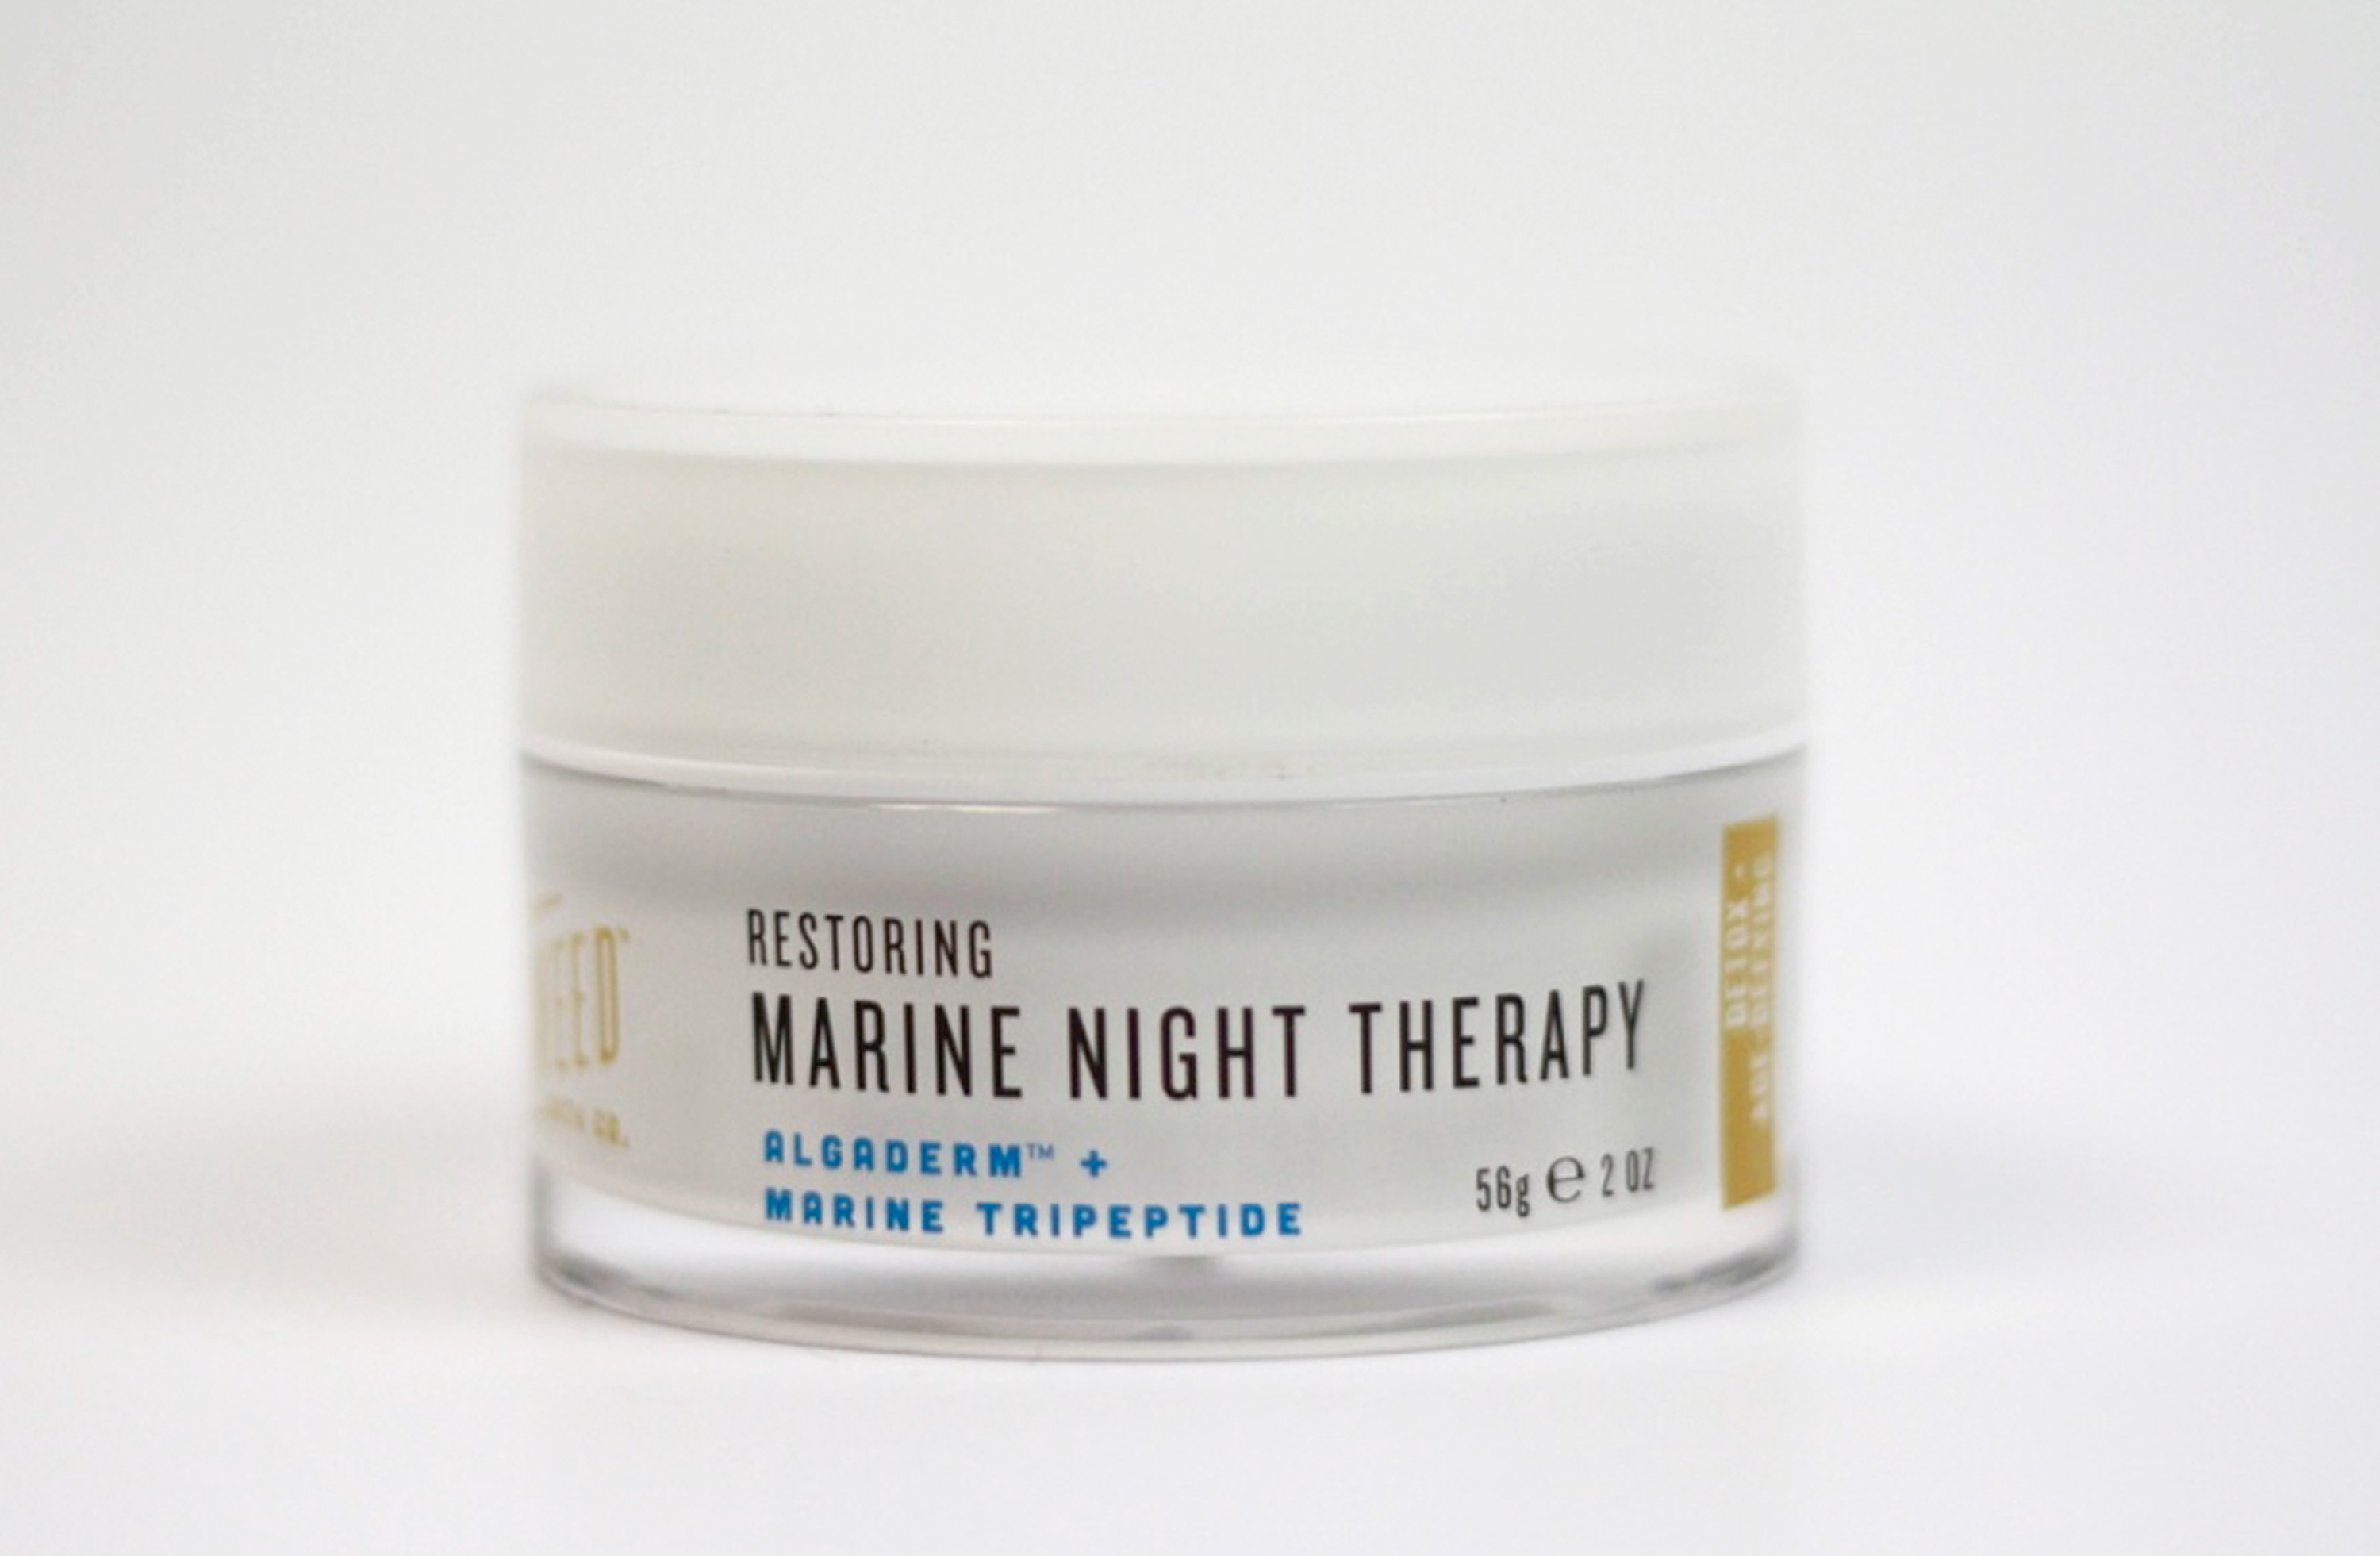 The Seaweed Bath Co. Detox + Age-Defying Restoring Marine Night Therapy